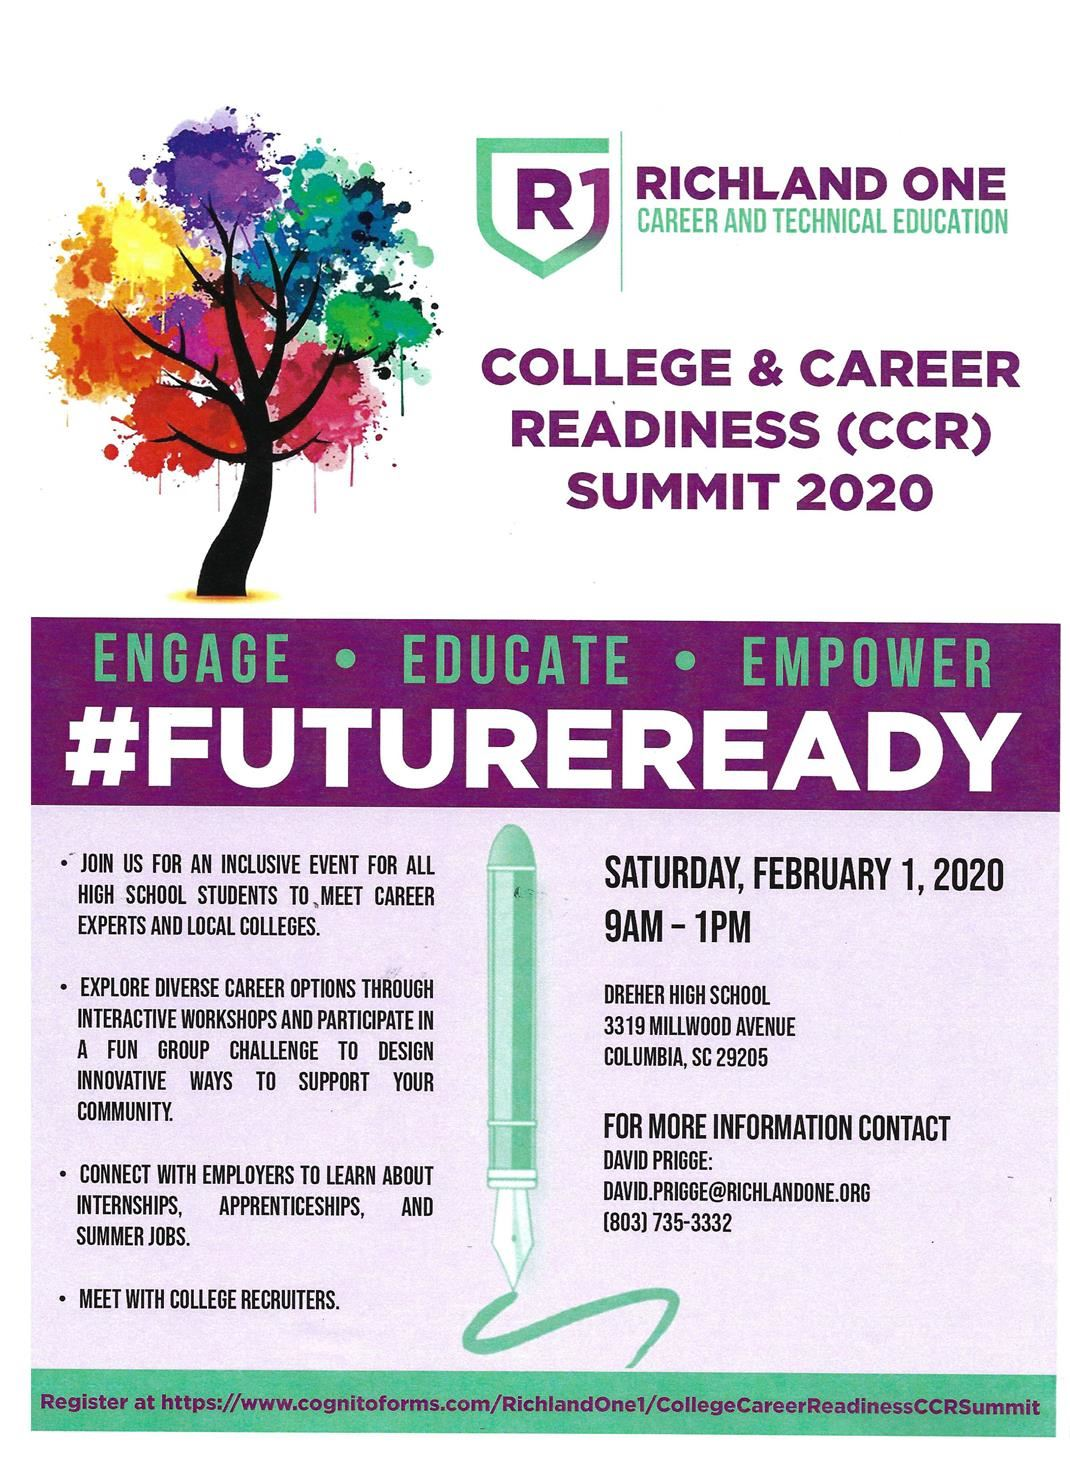 College and Career Readiness Summit